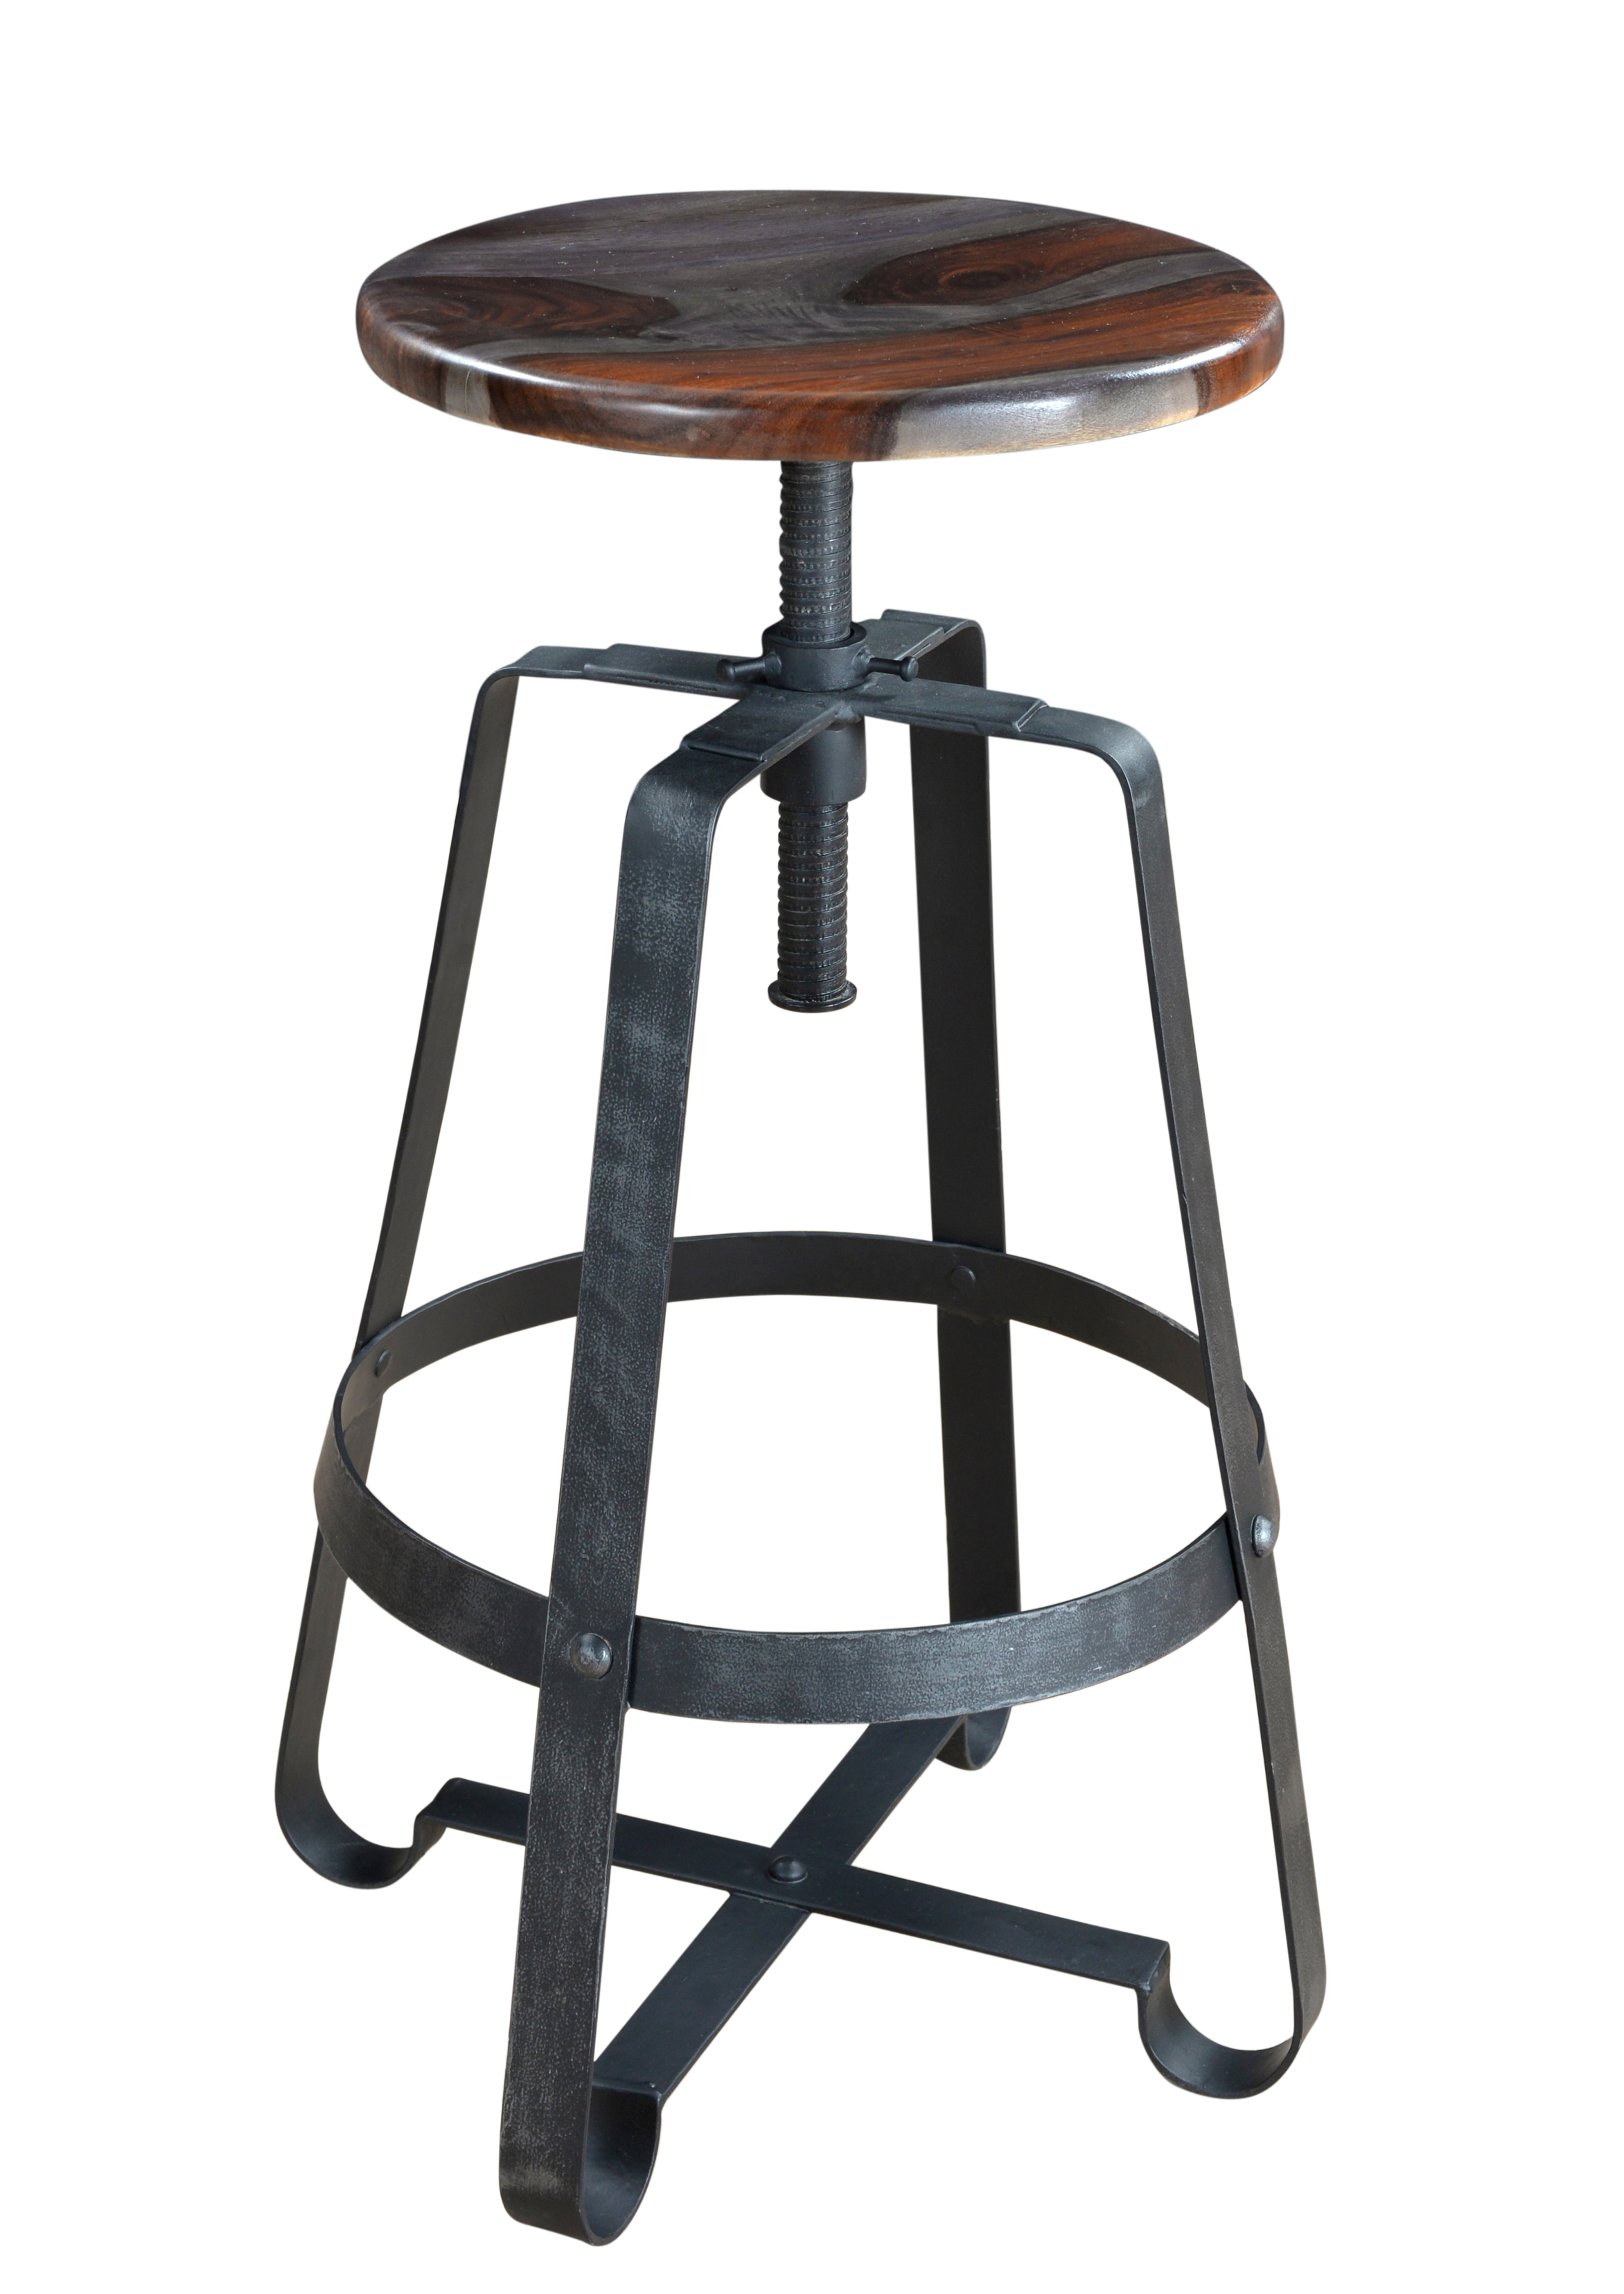 Accents Adjustable Barstool by Coast to Coast Imports at HomeWorld Furniture